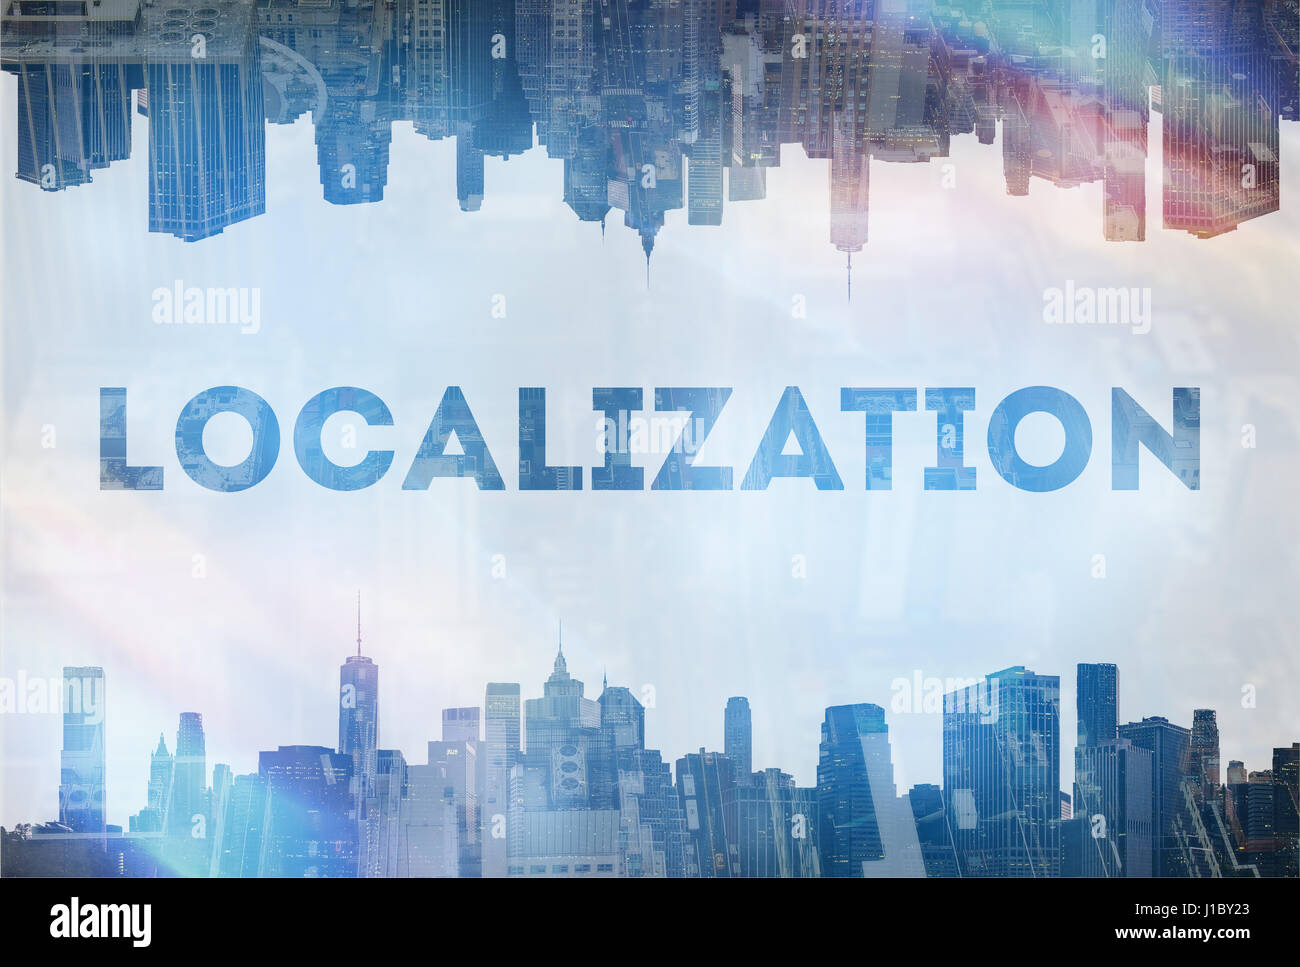 Localization concept image - Stock Image